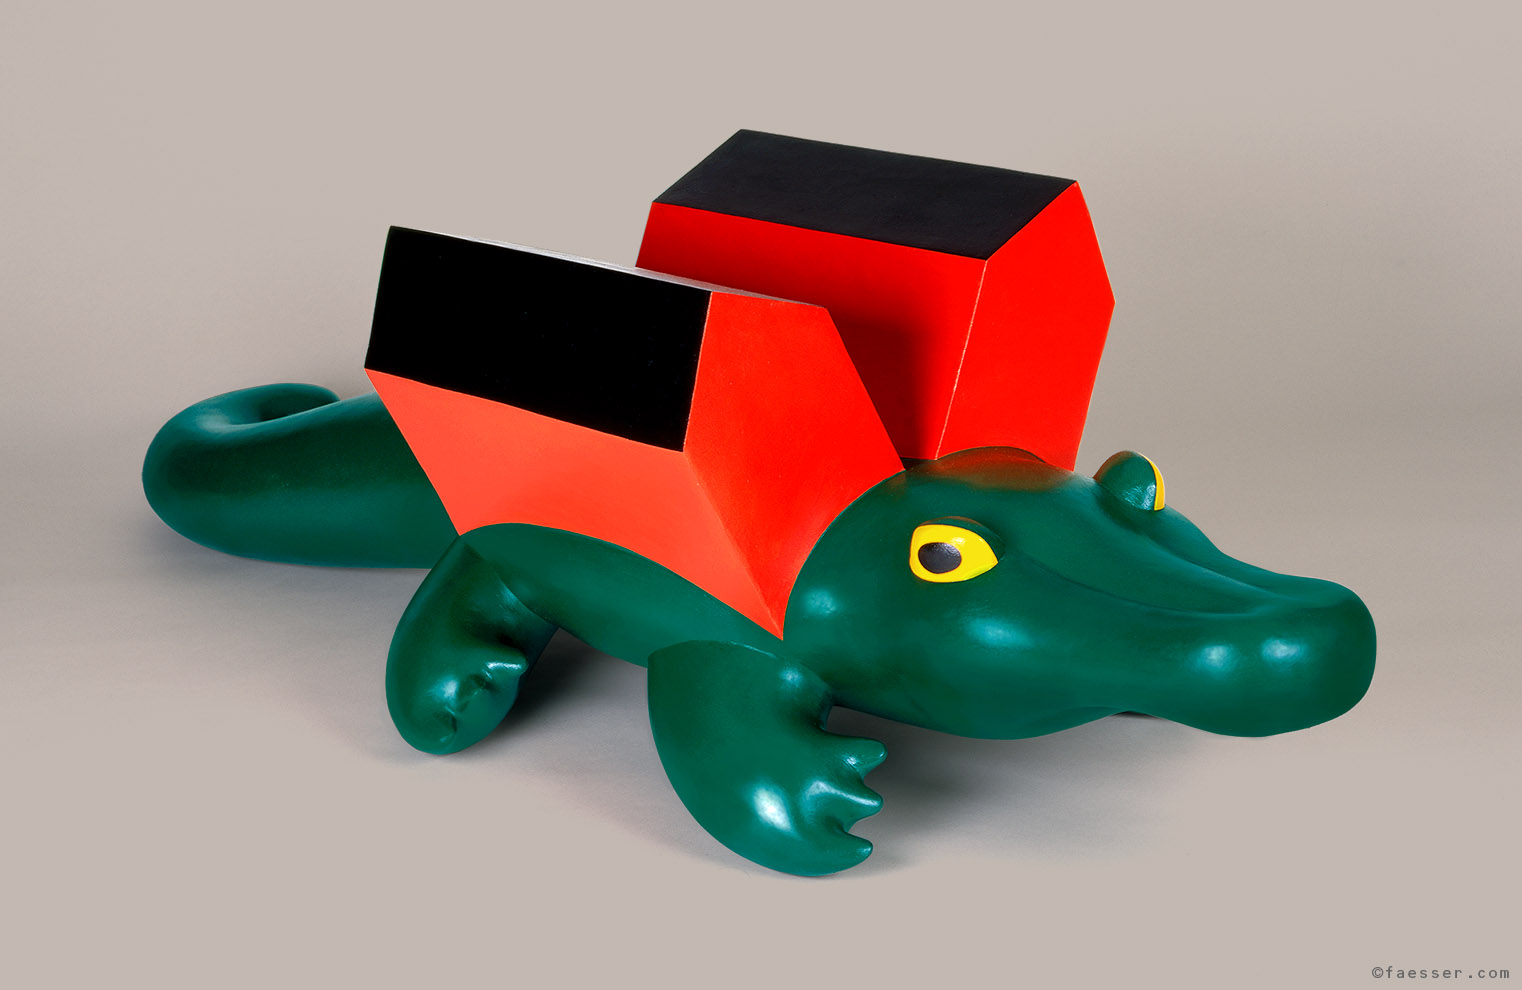 Formerly inflated crocodile extended with two houses; artist Roland Faesser, sculptor and painter 1994